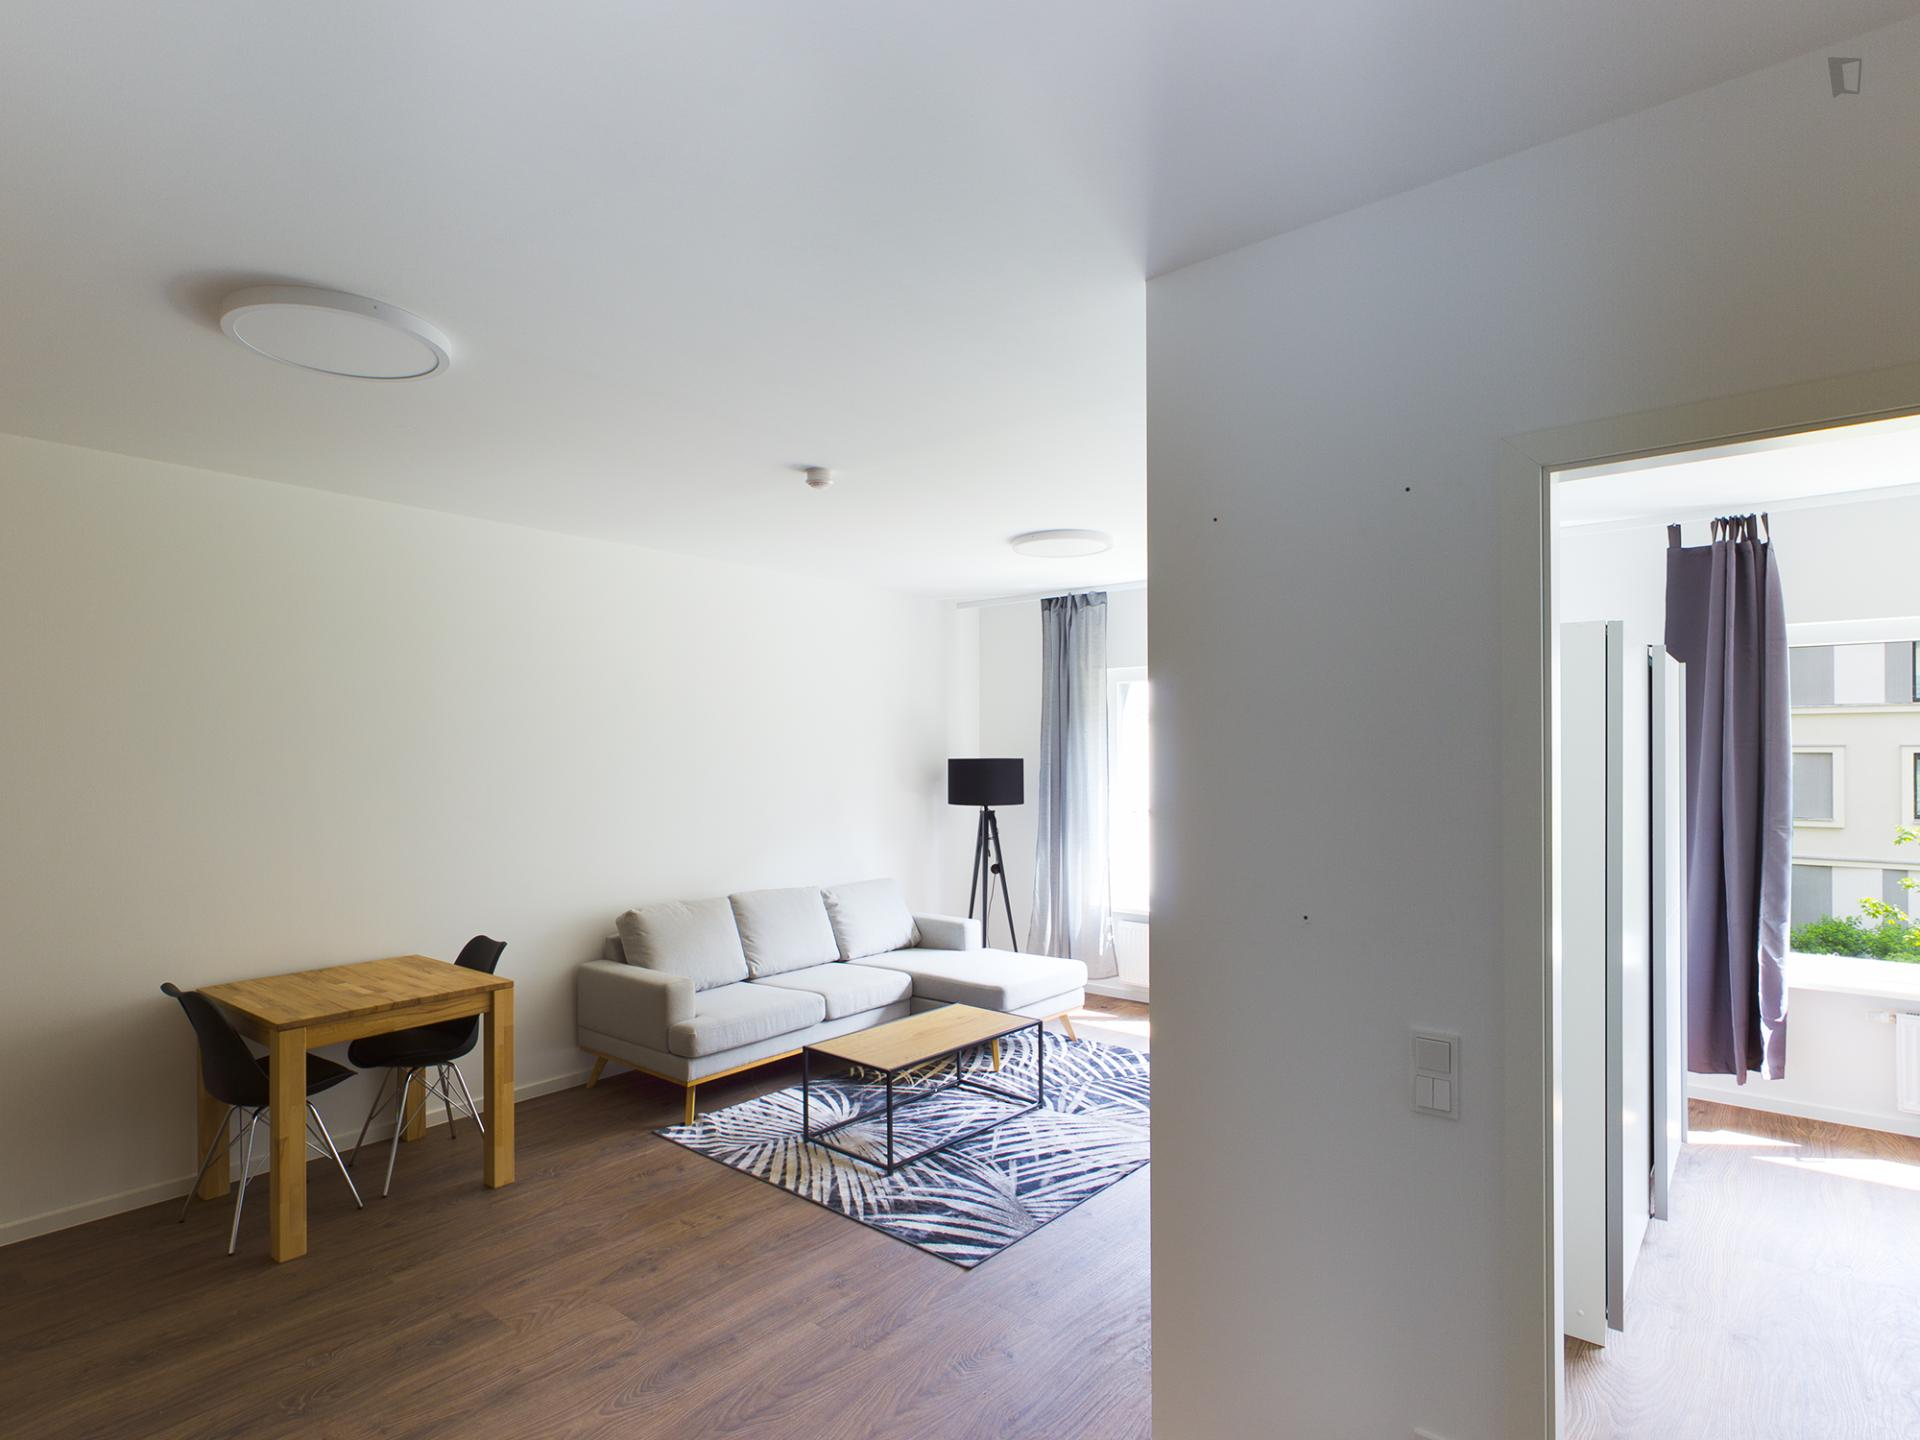 Fritz - Entry ready apartment in Berlin